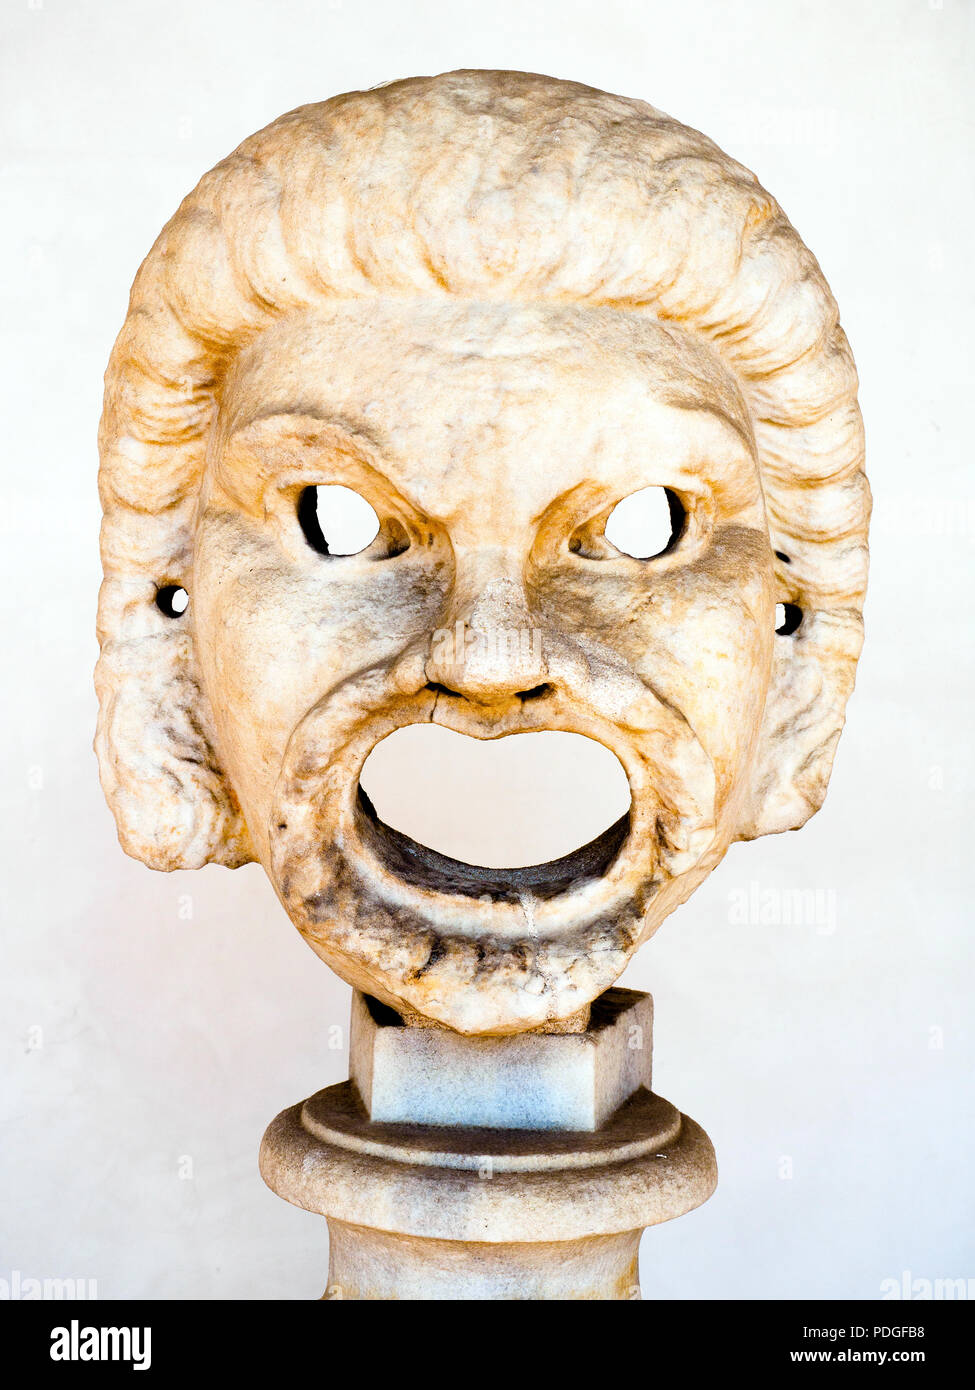 Male comic mask in white marble 2nd Century AD unknown provenance - National Roman Museum - The Baths of Diocletian - Rome, Italy - Stock Image